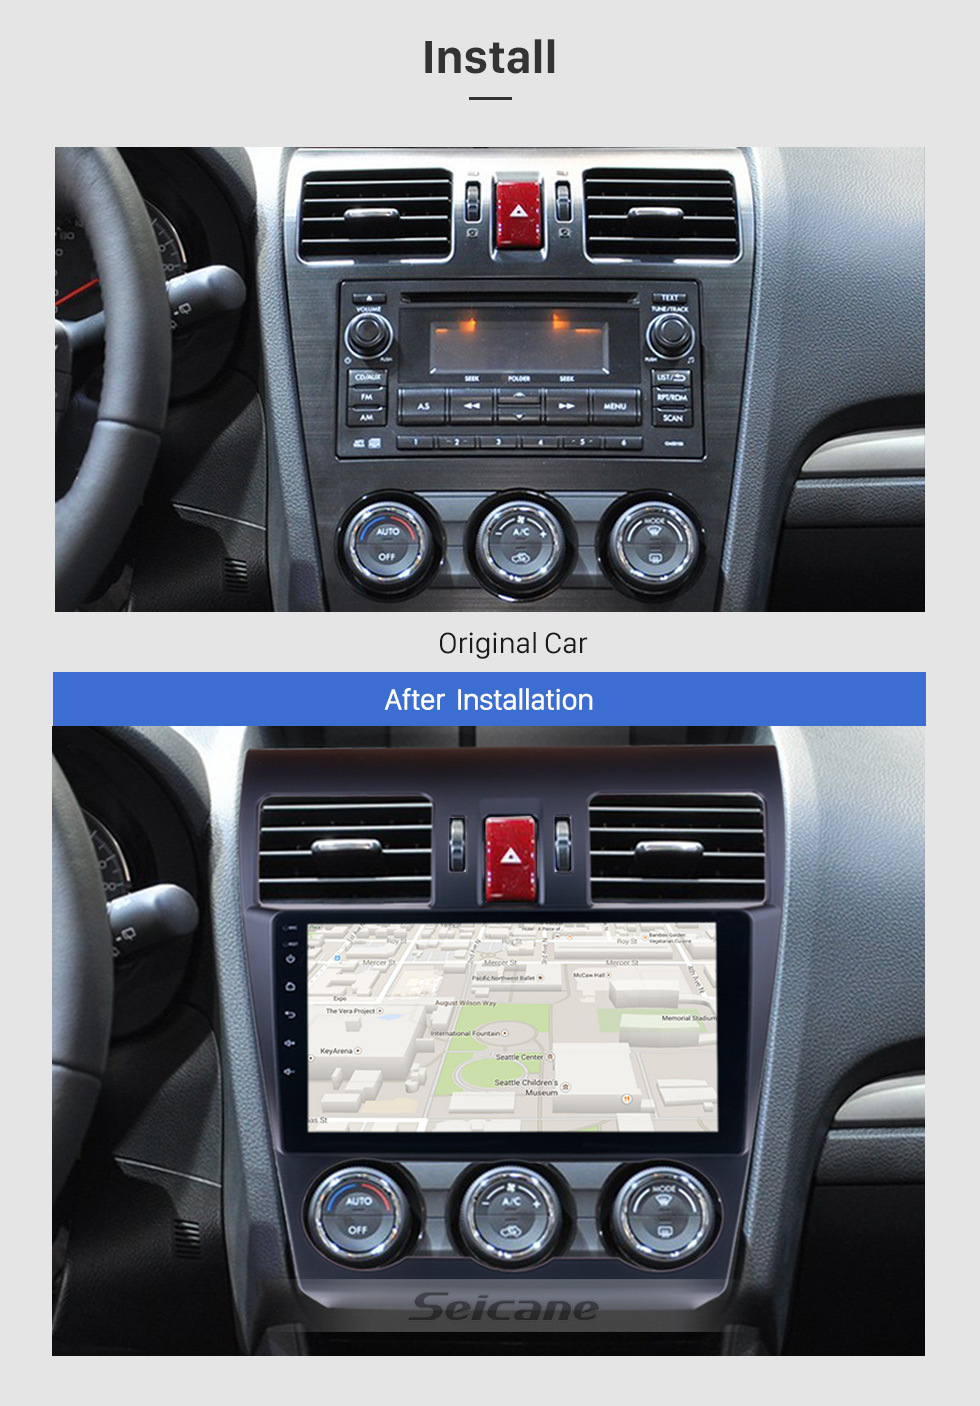 Top Seicane 9 Inch 2din 8-core Android 8.1 Car Radio GPS Multimedia Player For 2015 Subaru Forester support Steering Wheel Control 2